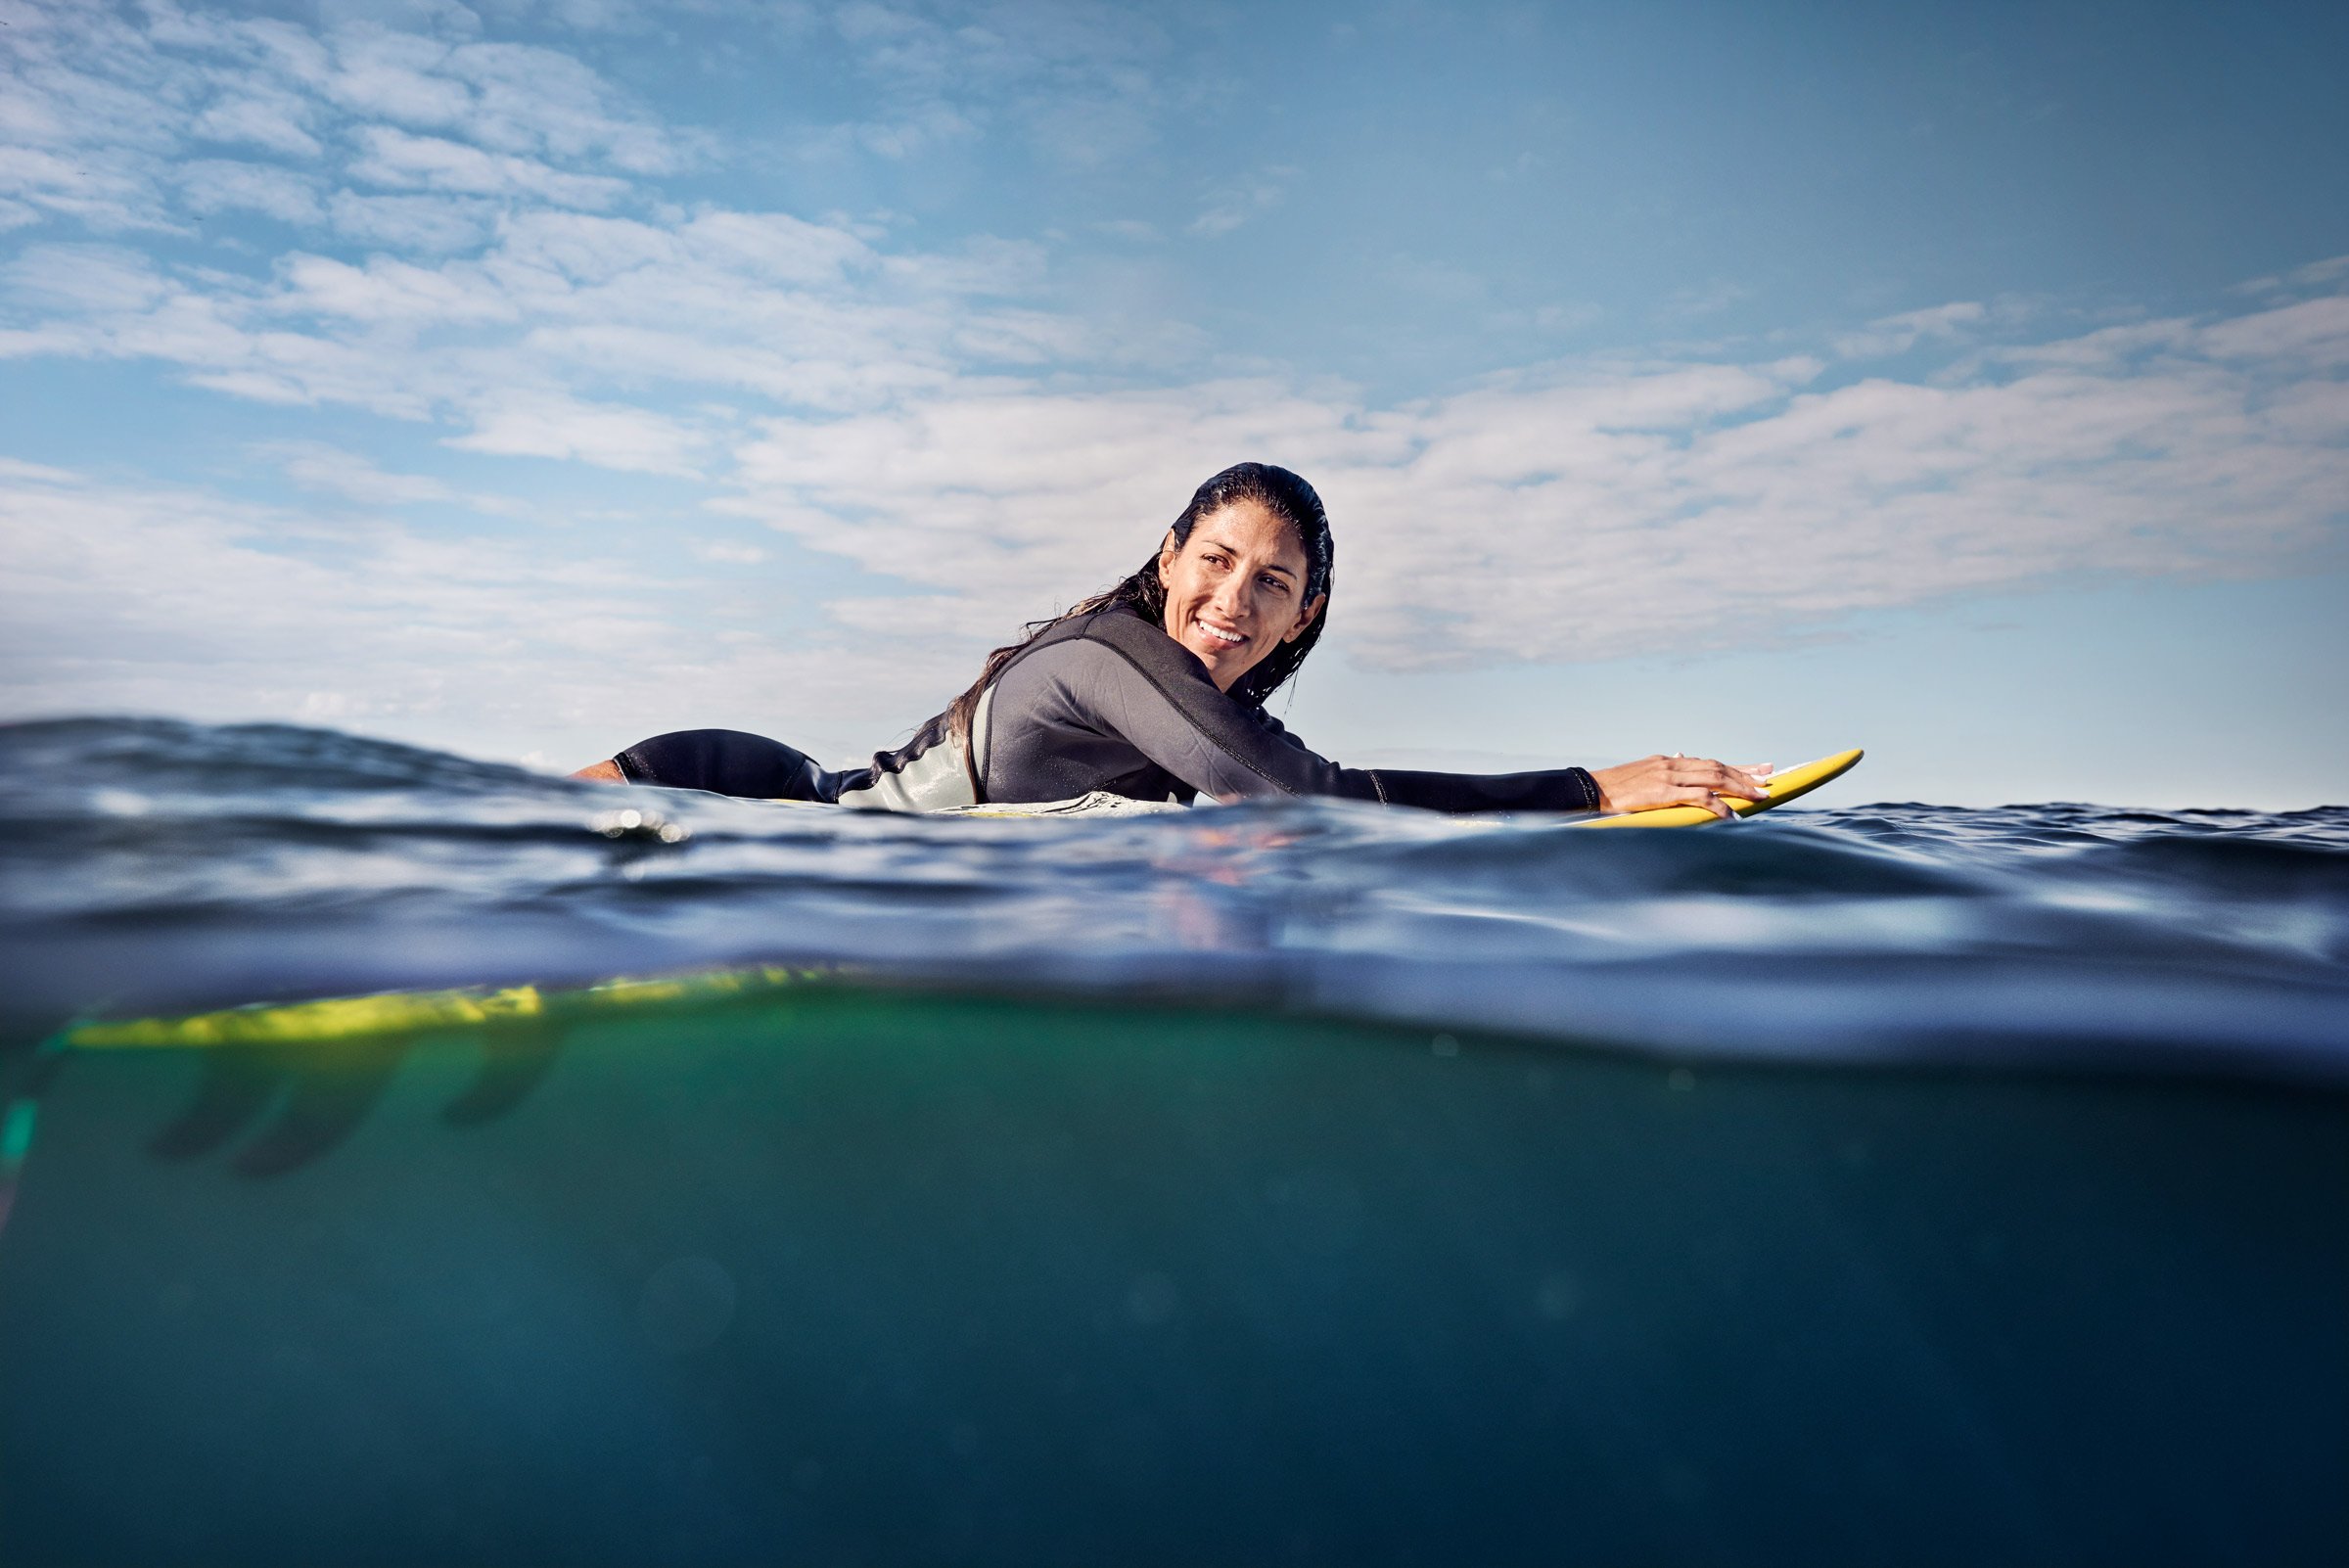 Surfers_Woman-Paddling-on-Surfboard_Abbott_4364_v3